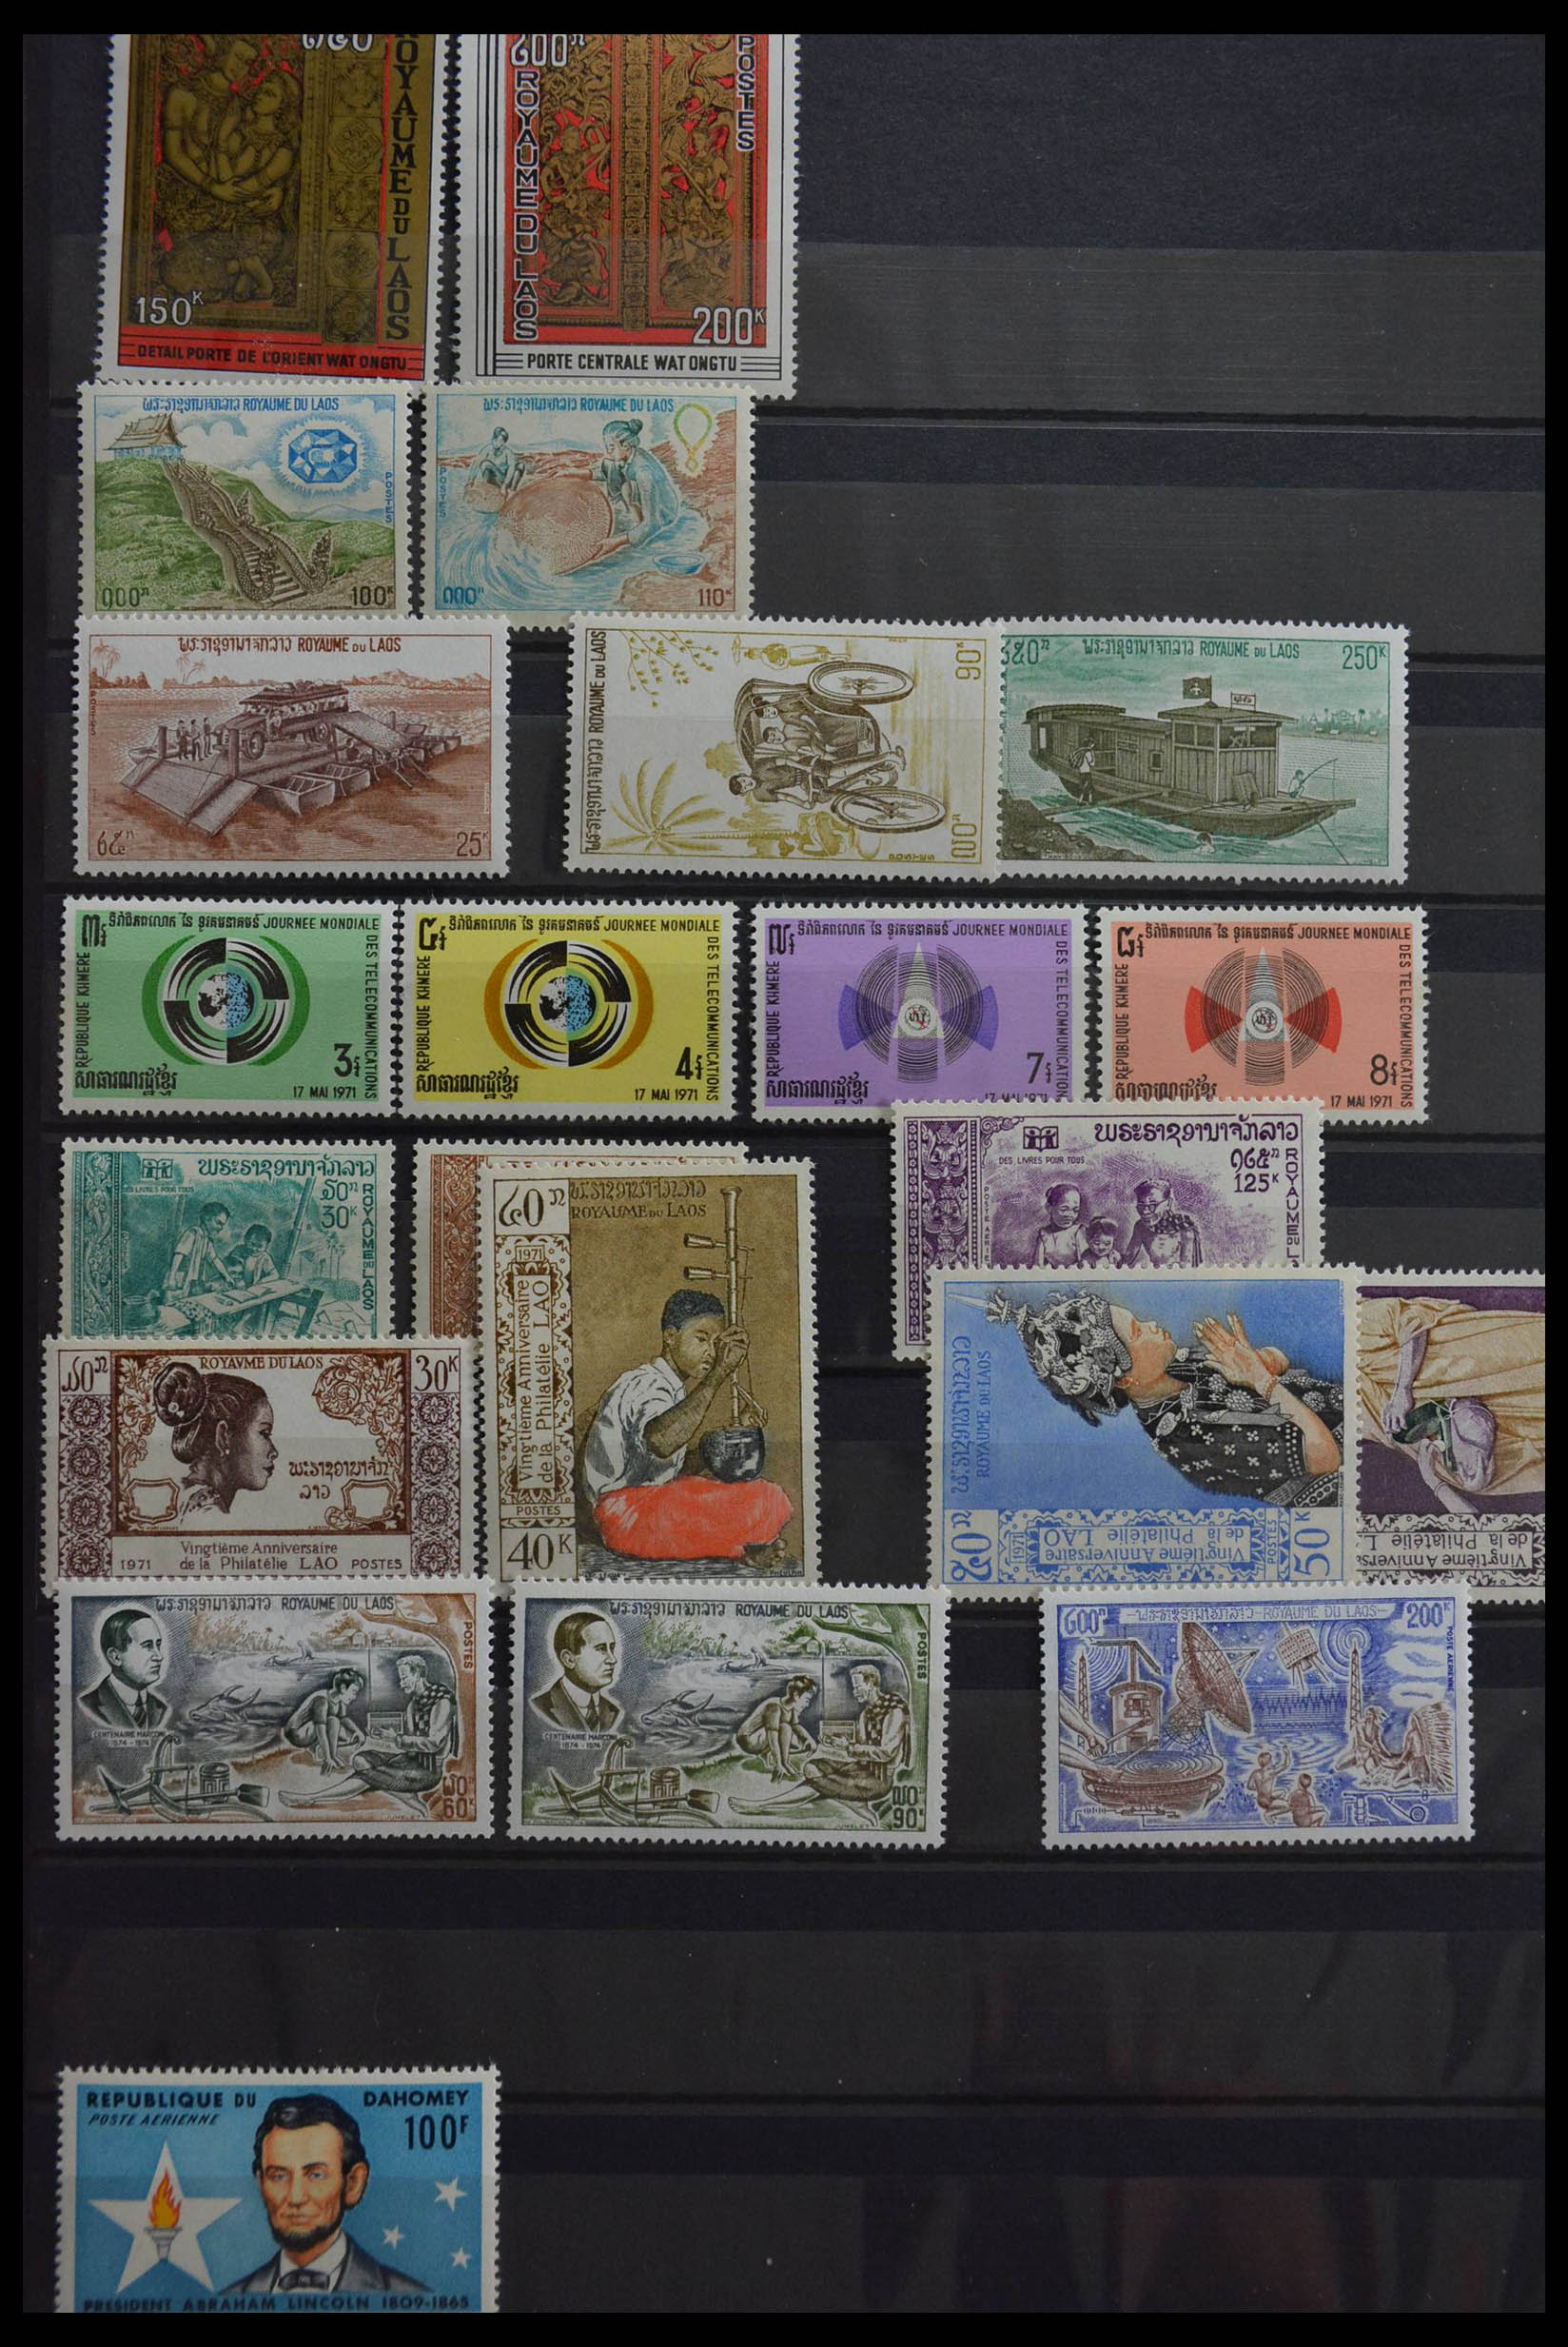 28518 008 - Stamp collection 28518 Africa.